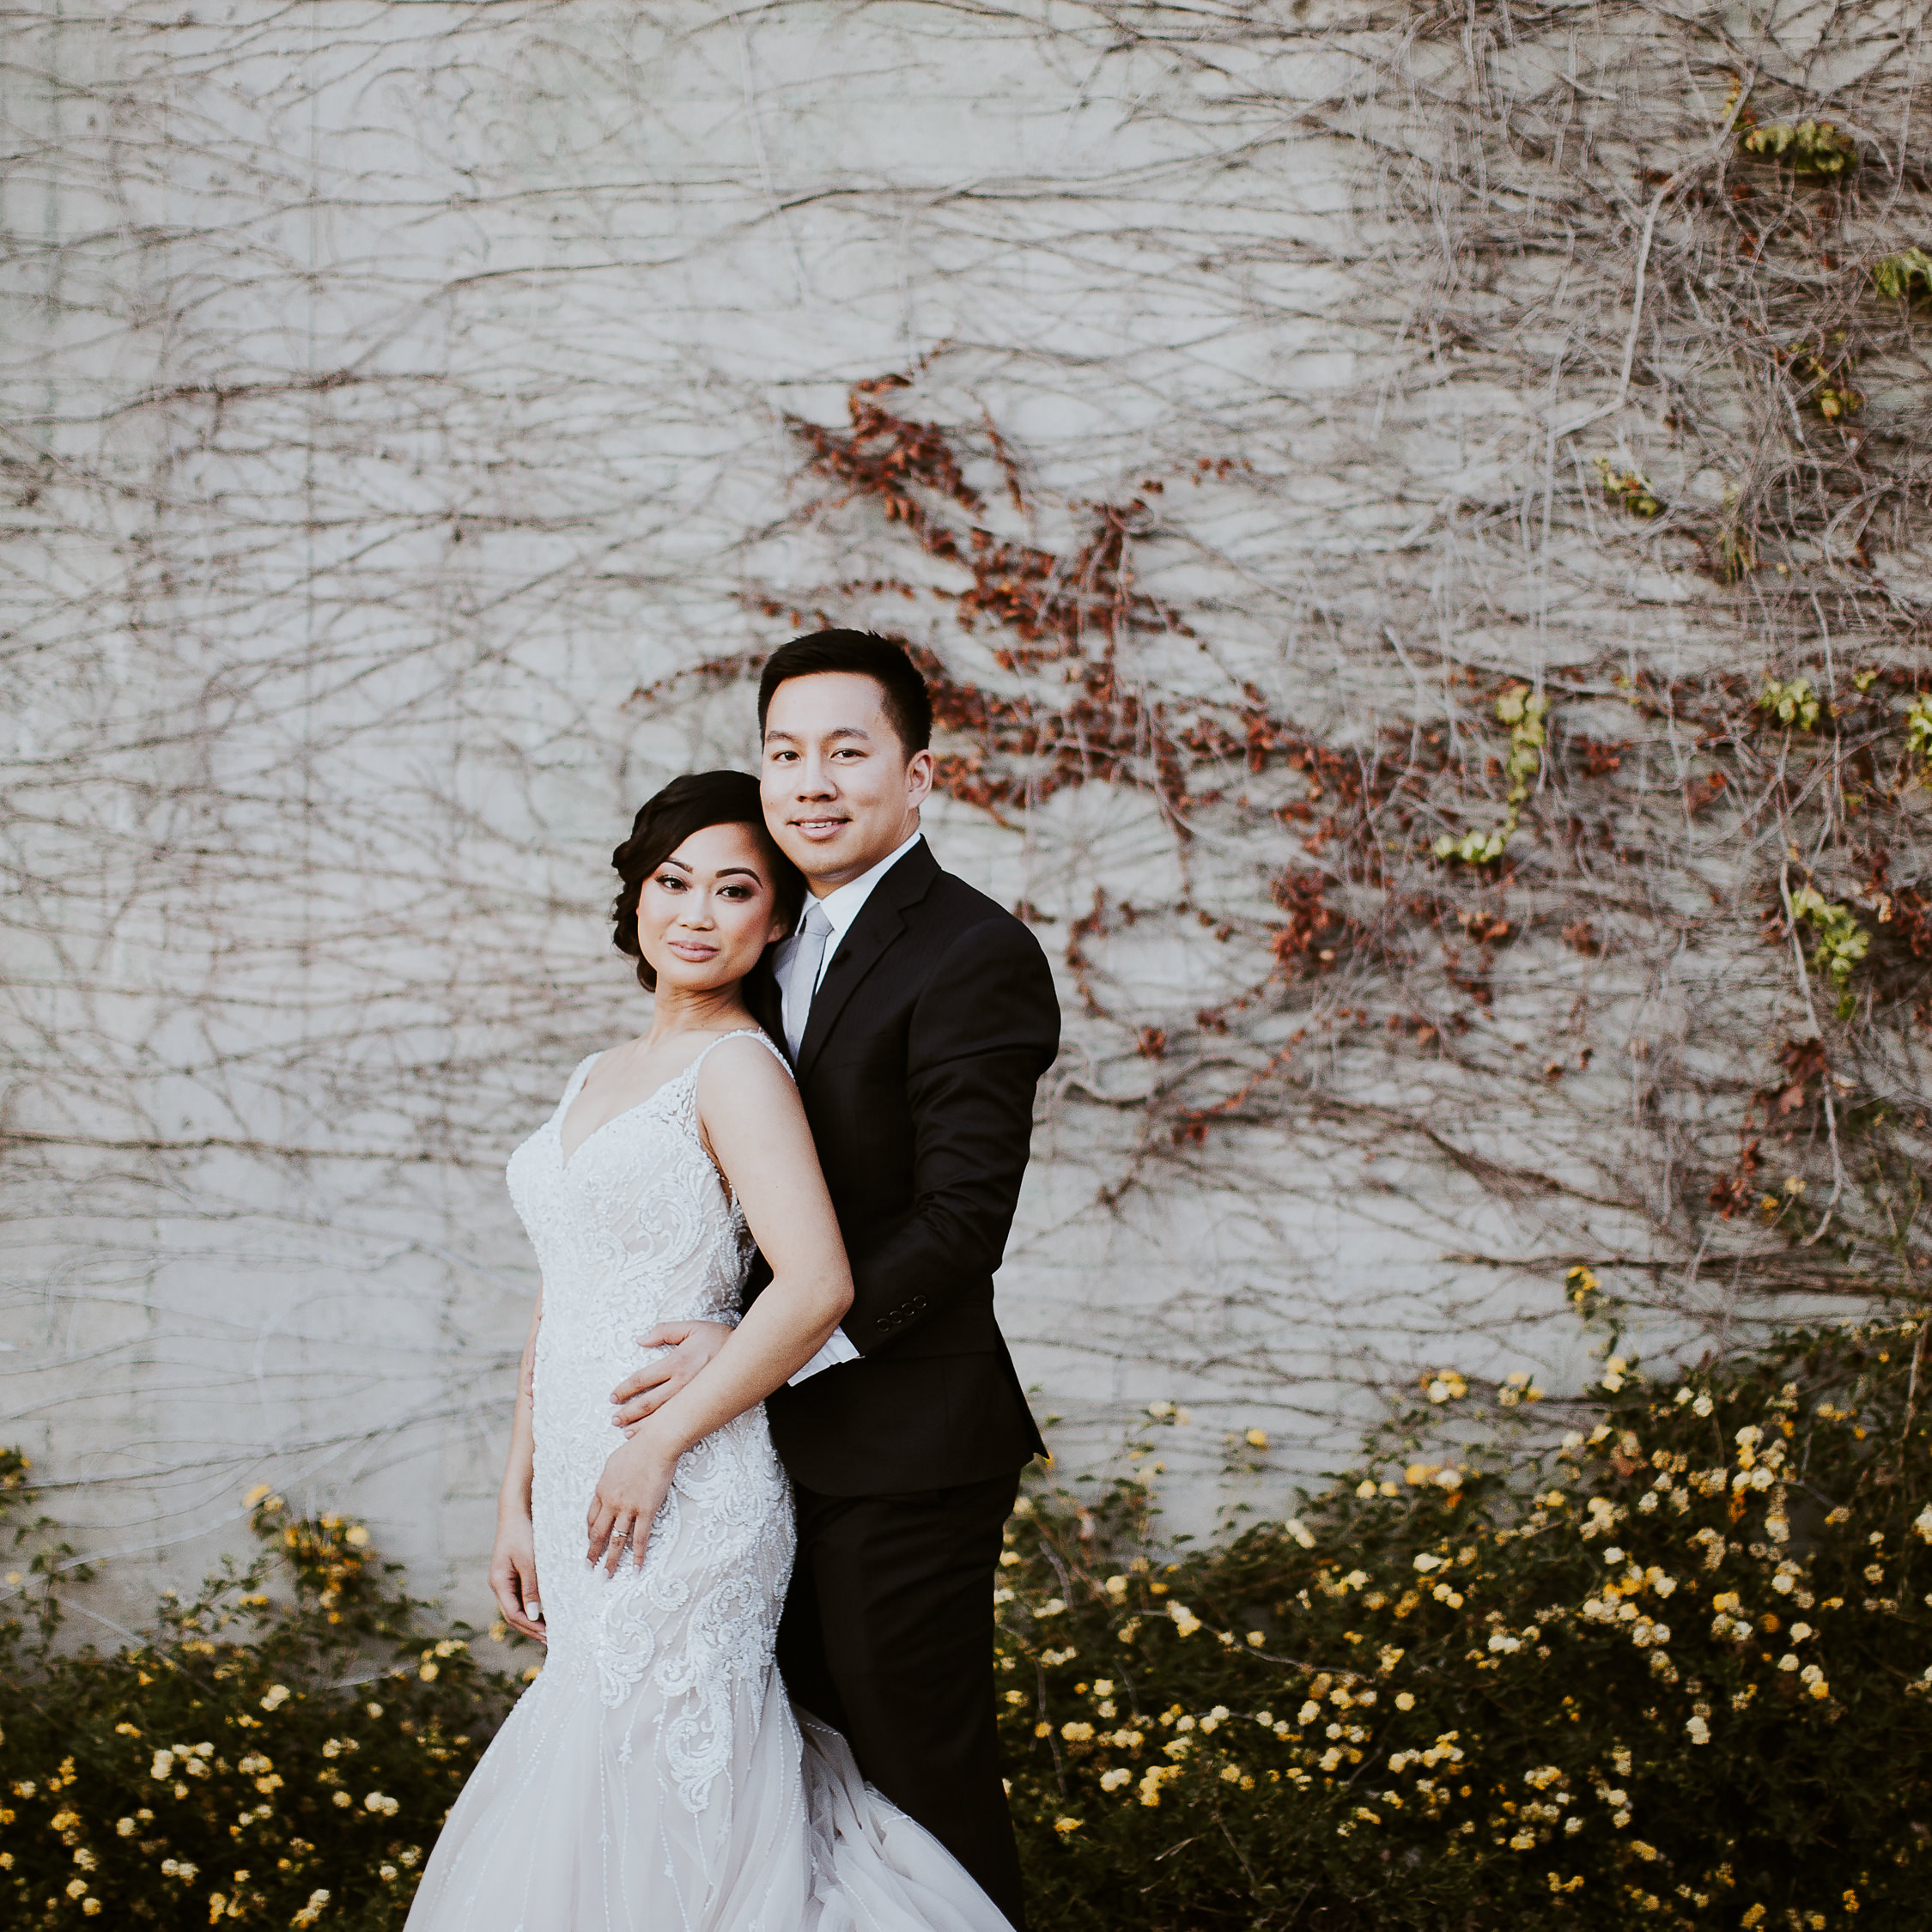 sam + veralyn | The Mitten Building Wedding